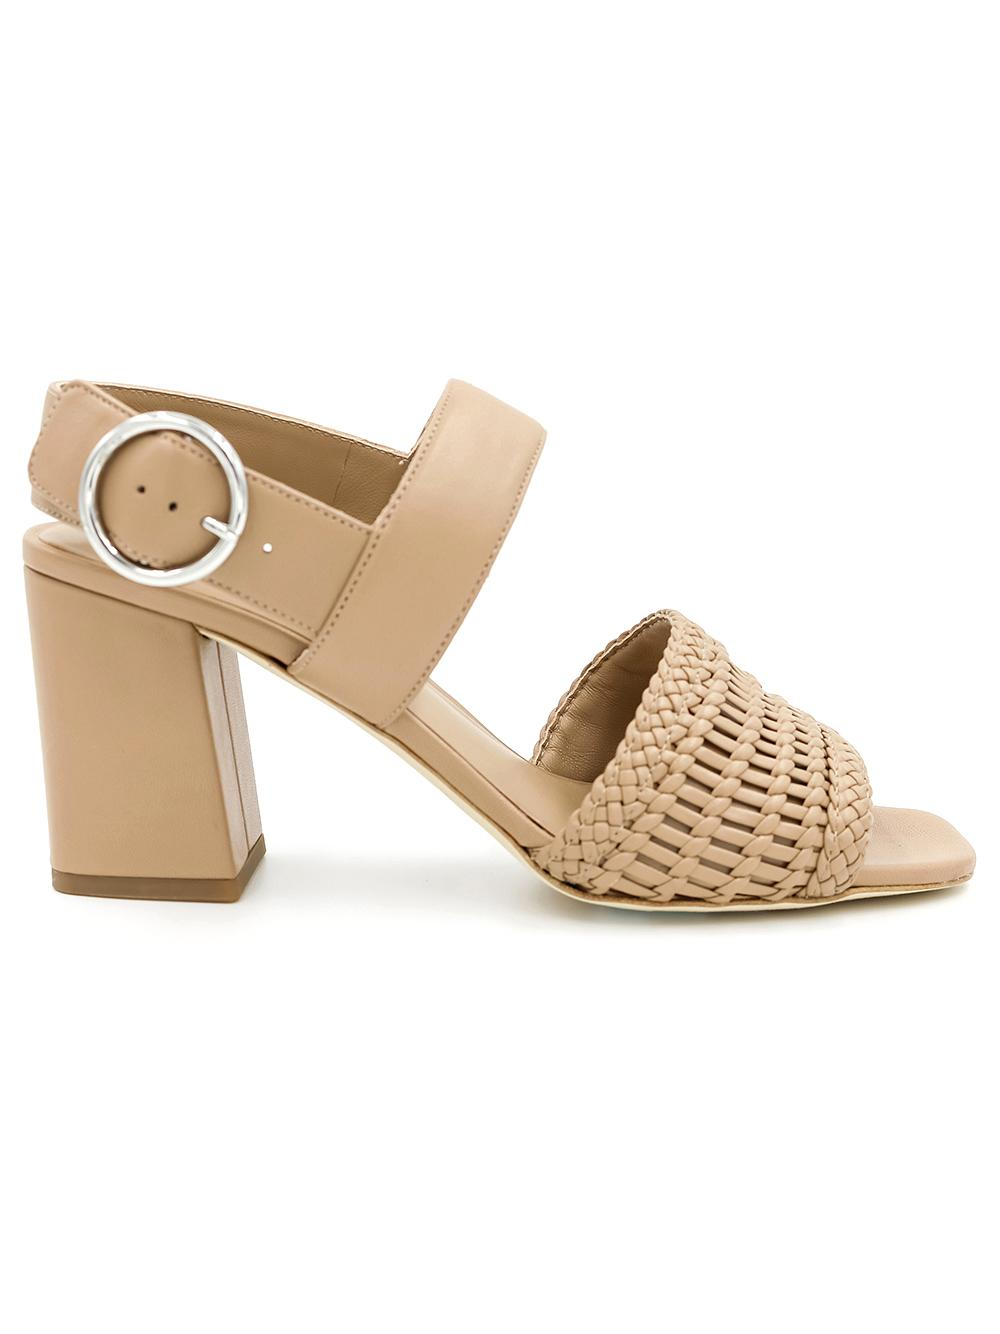 Woven Leather Block Heel Sandel With Slingback